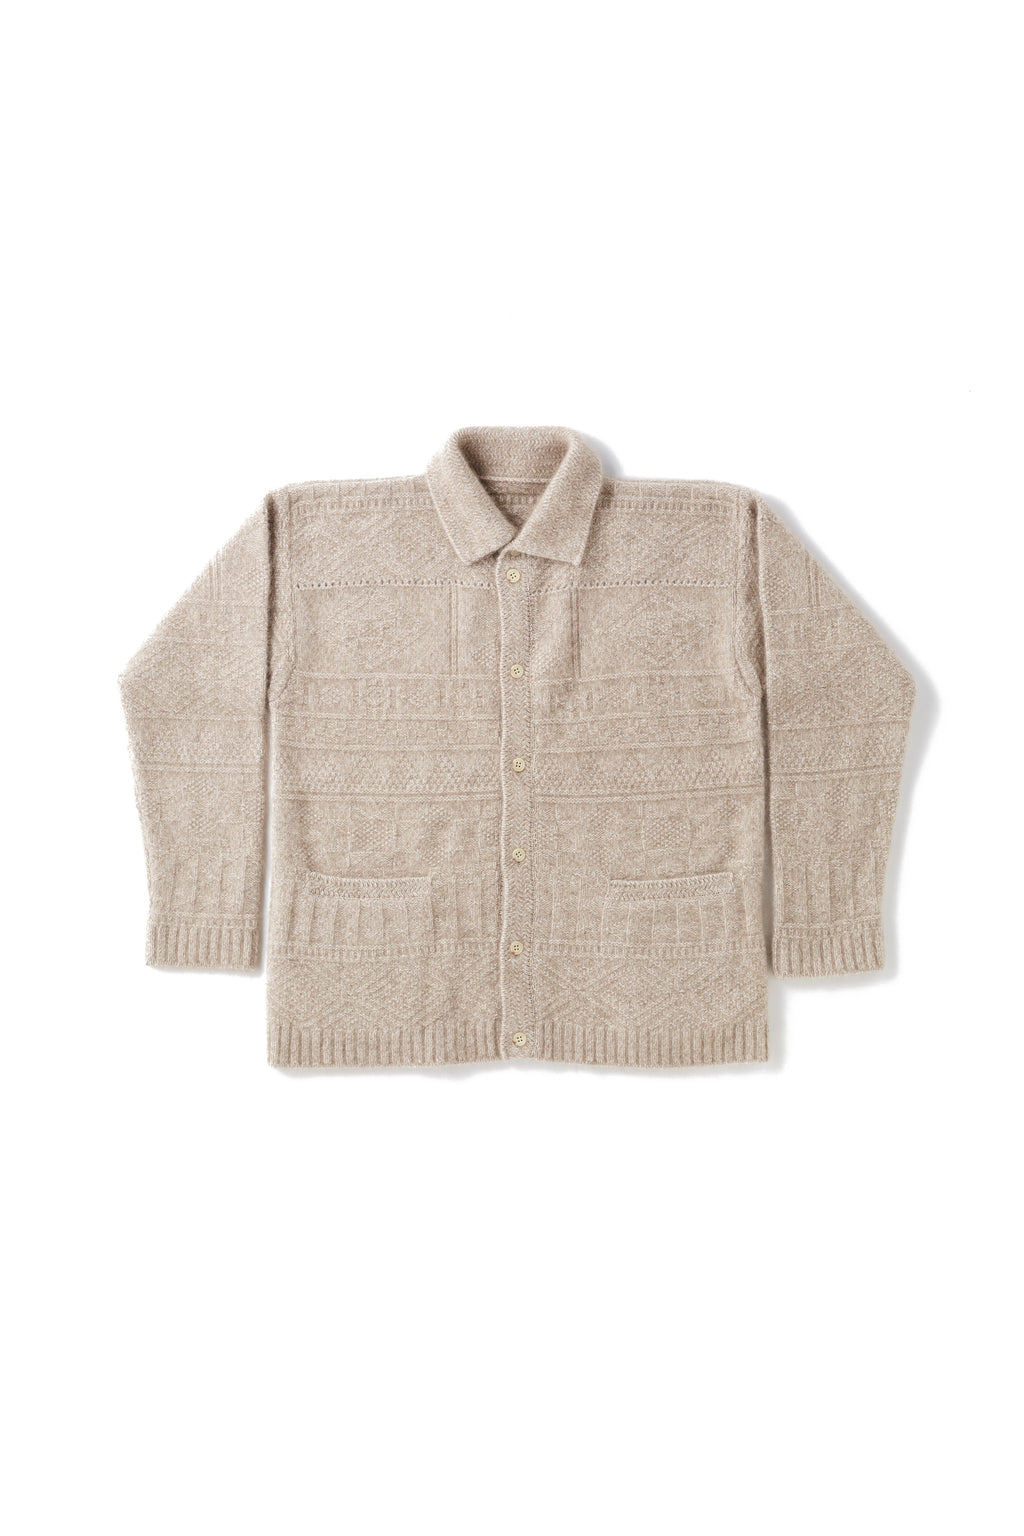 RACOON GUERNSEY BUTTONED SWEATER - 202OJ-KN06